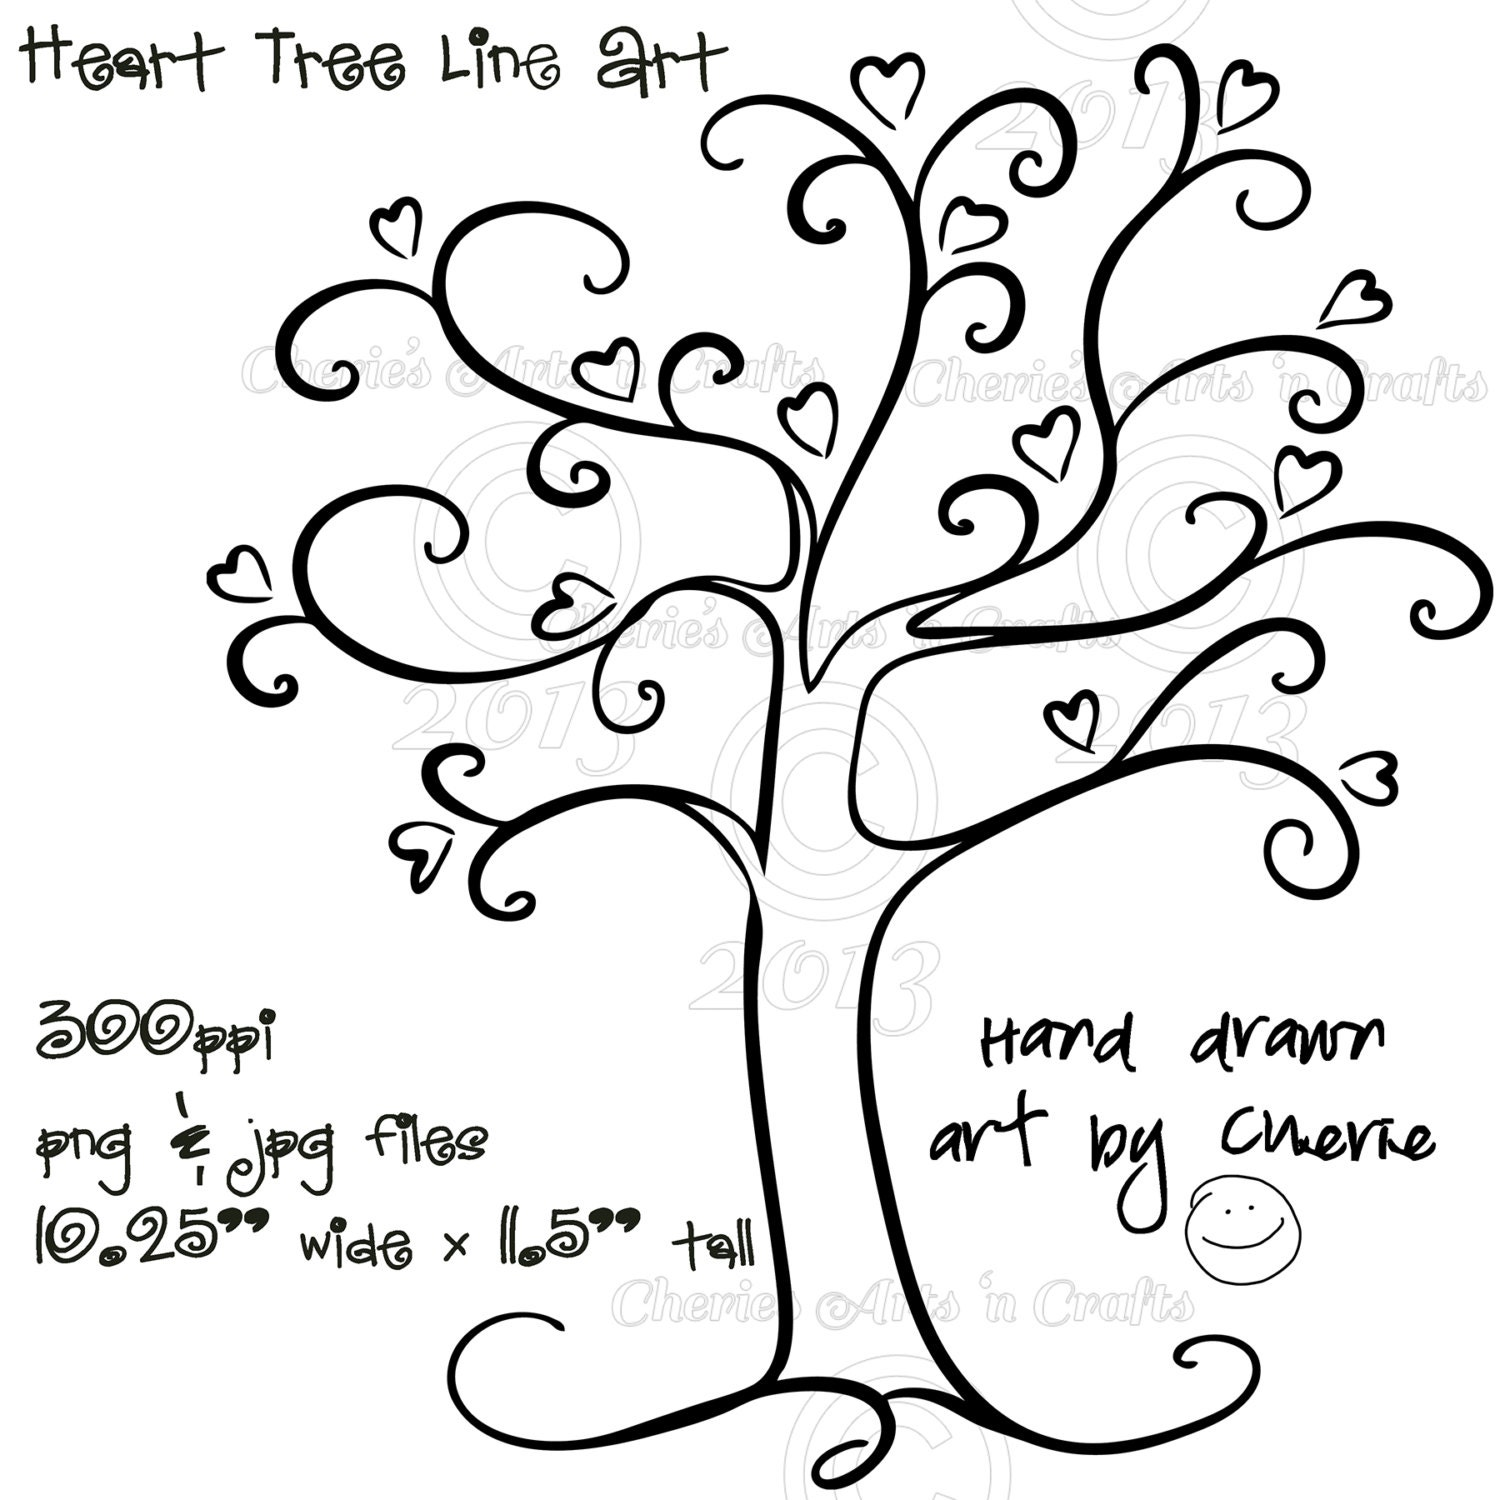 Heart Tree Png And Jpg Graphics Digital By Cheriesartsncrafts Whimsical Tree Coloring Page